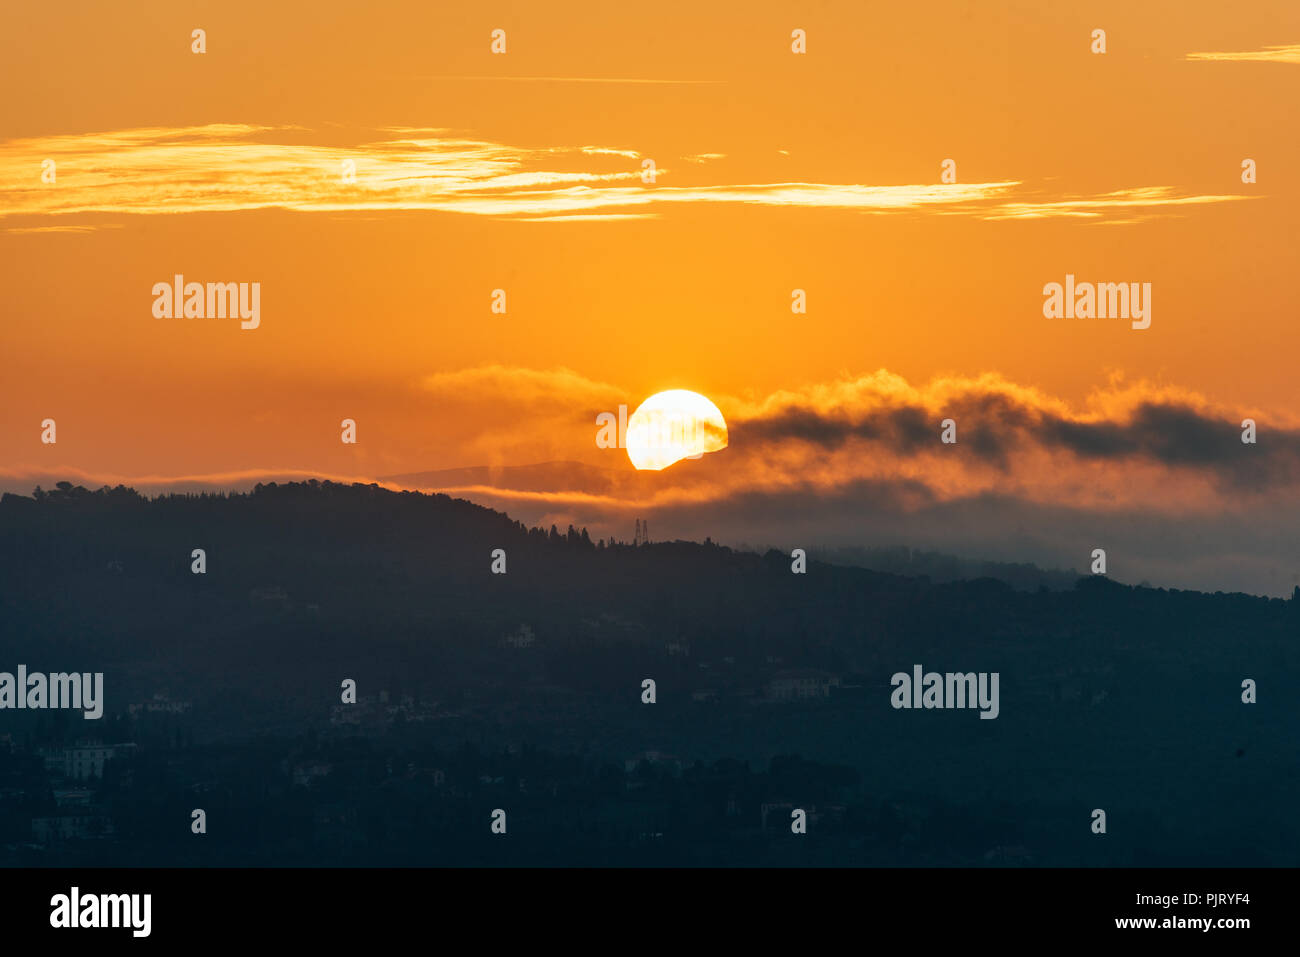 Sunrise Silhouette in Florence - Stock Image